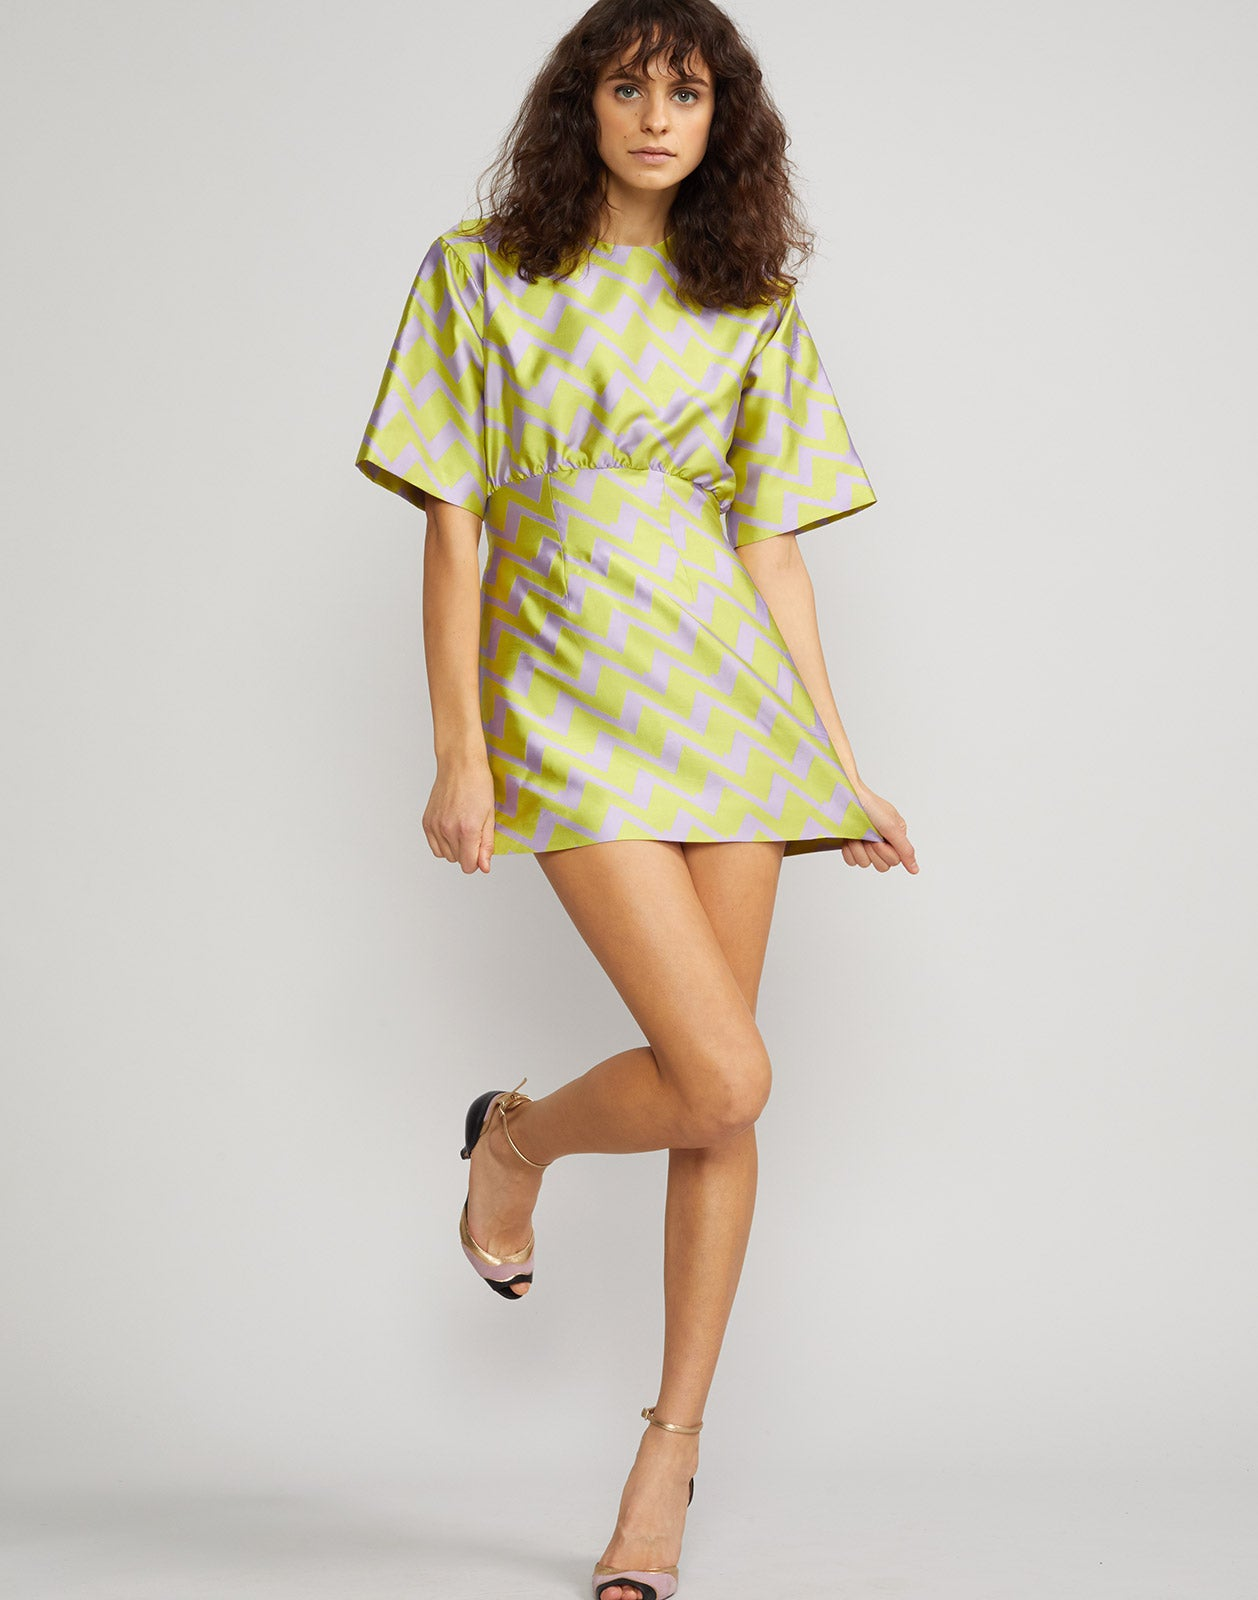 Full front view of the Evanston Zig Zag Brocade Mini Dress in lavender and lime